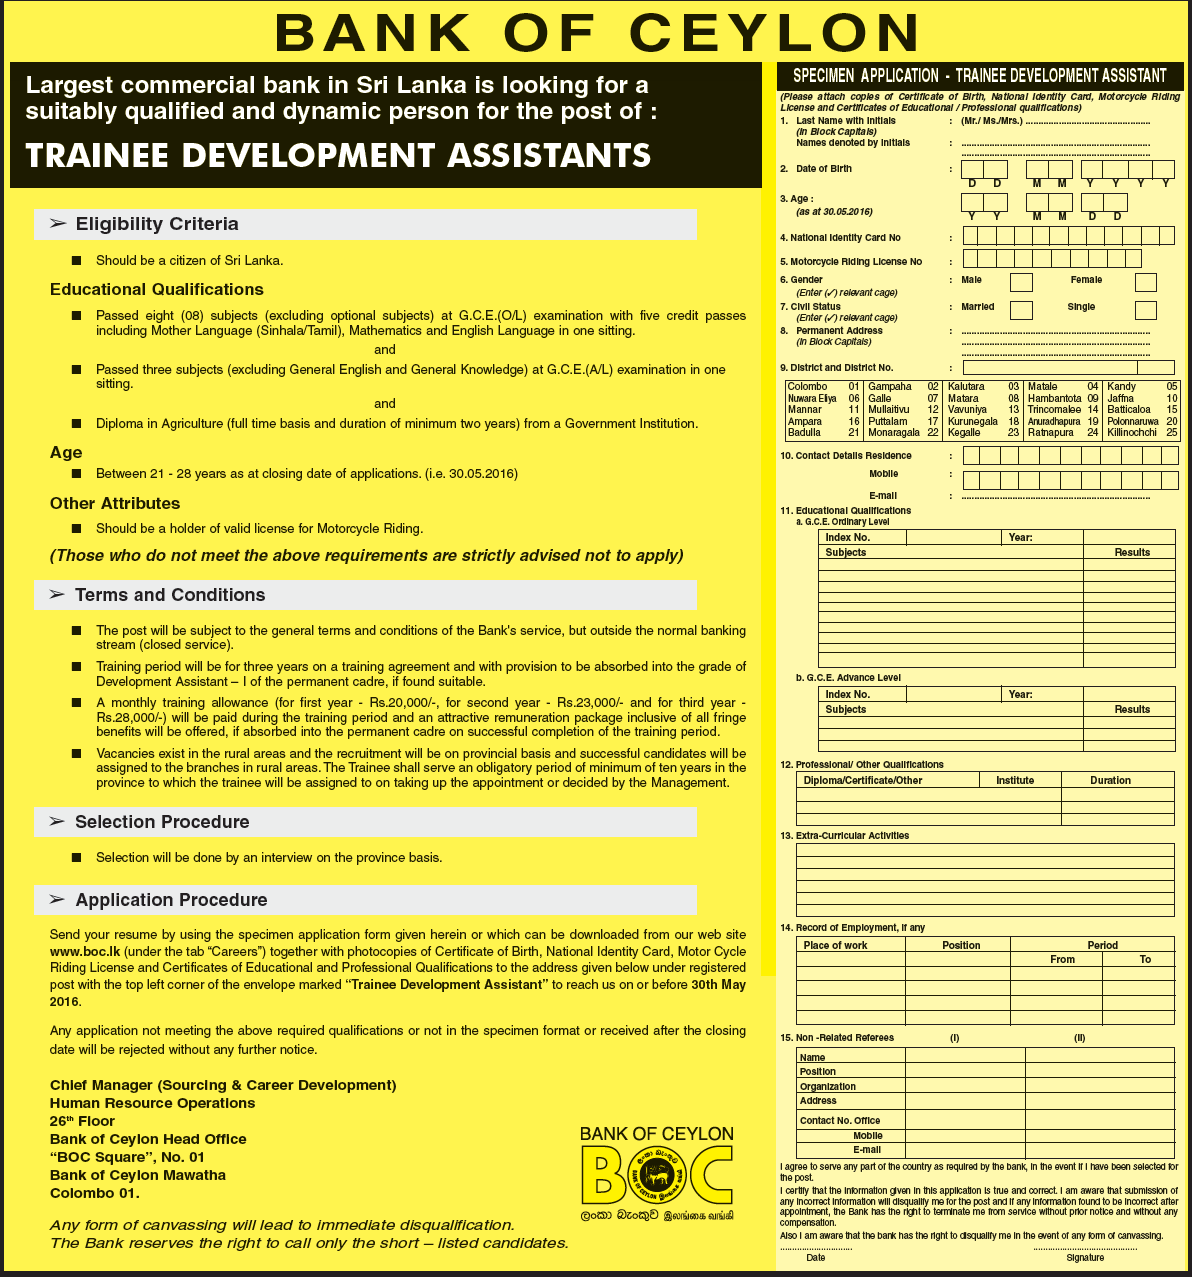 Trainee Development Assistants